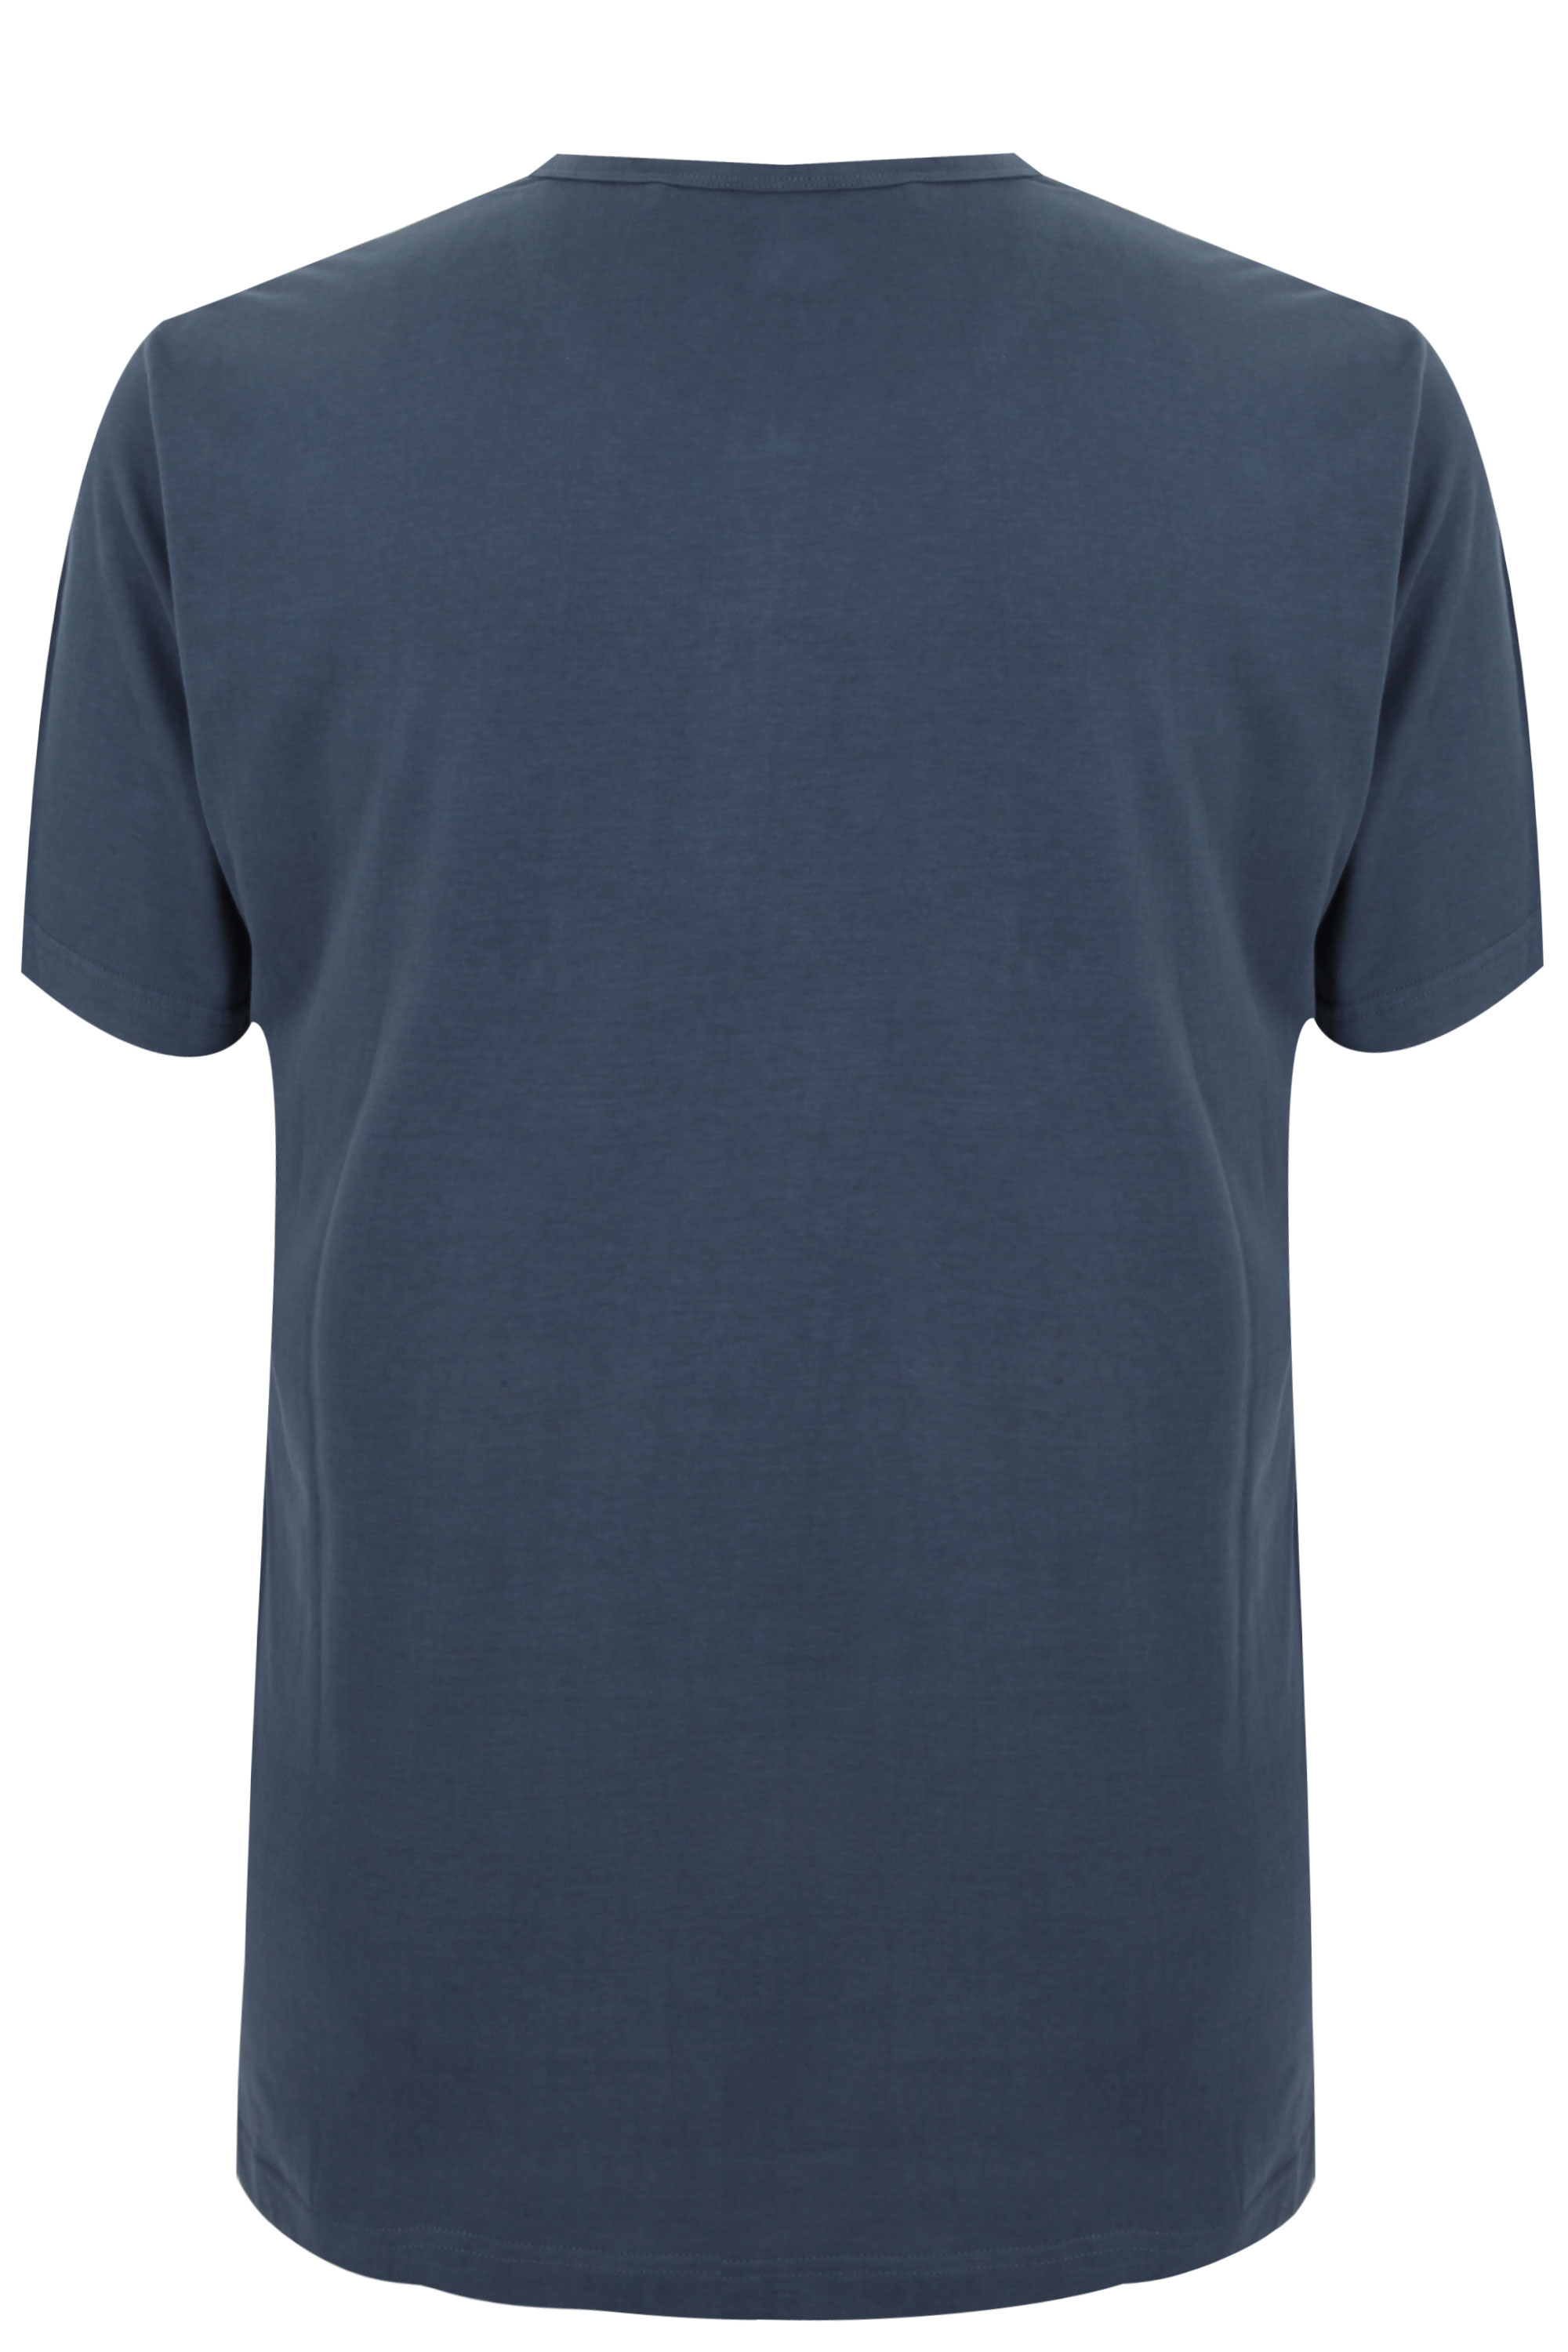 Badrhino denim blue short sleeve grandad t shirt sizes l for Short sleeve grandad shirt